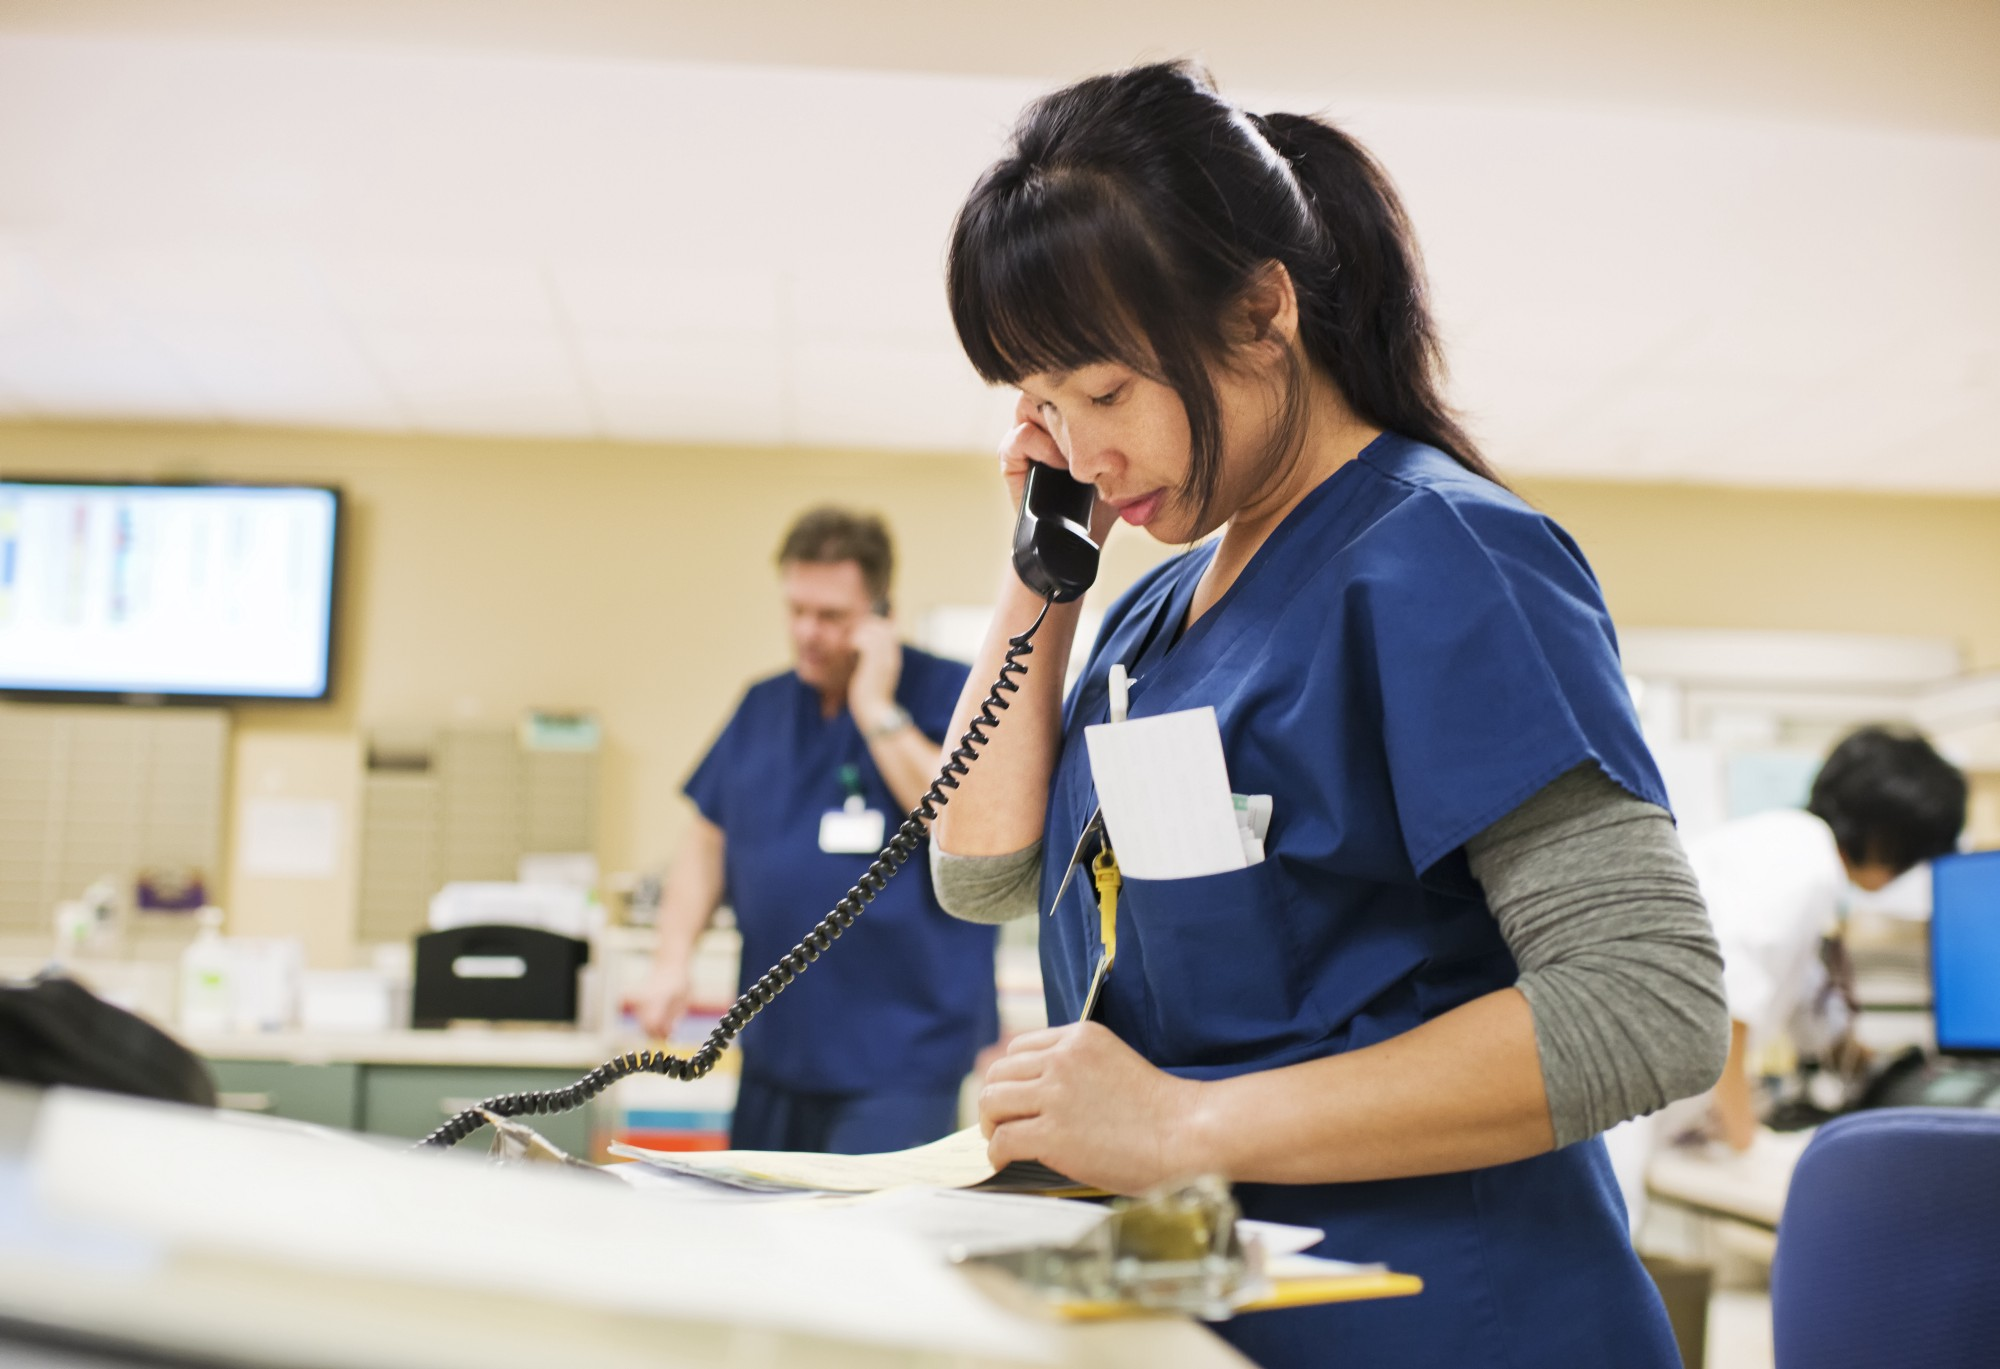 A photo of a clinical setting with three people in scrubs doing administration. In the foreground a nurse is on the phone.